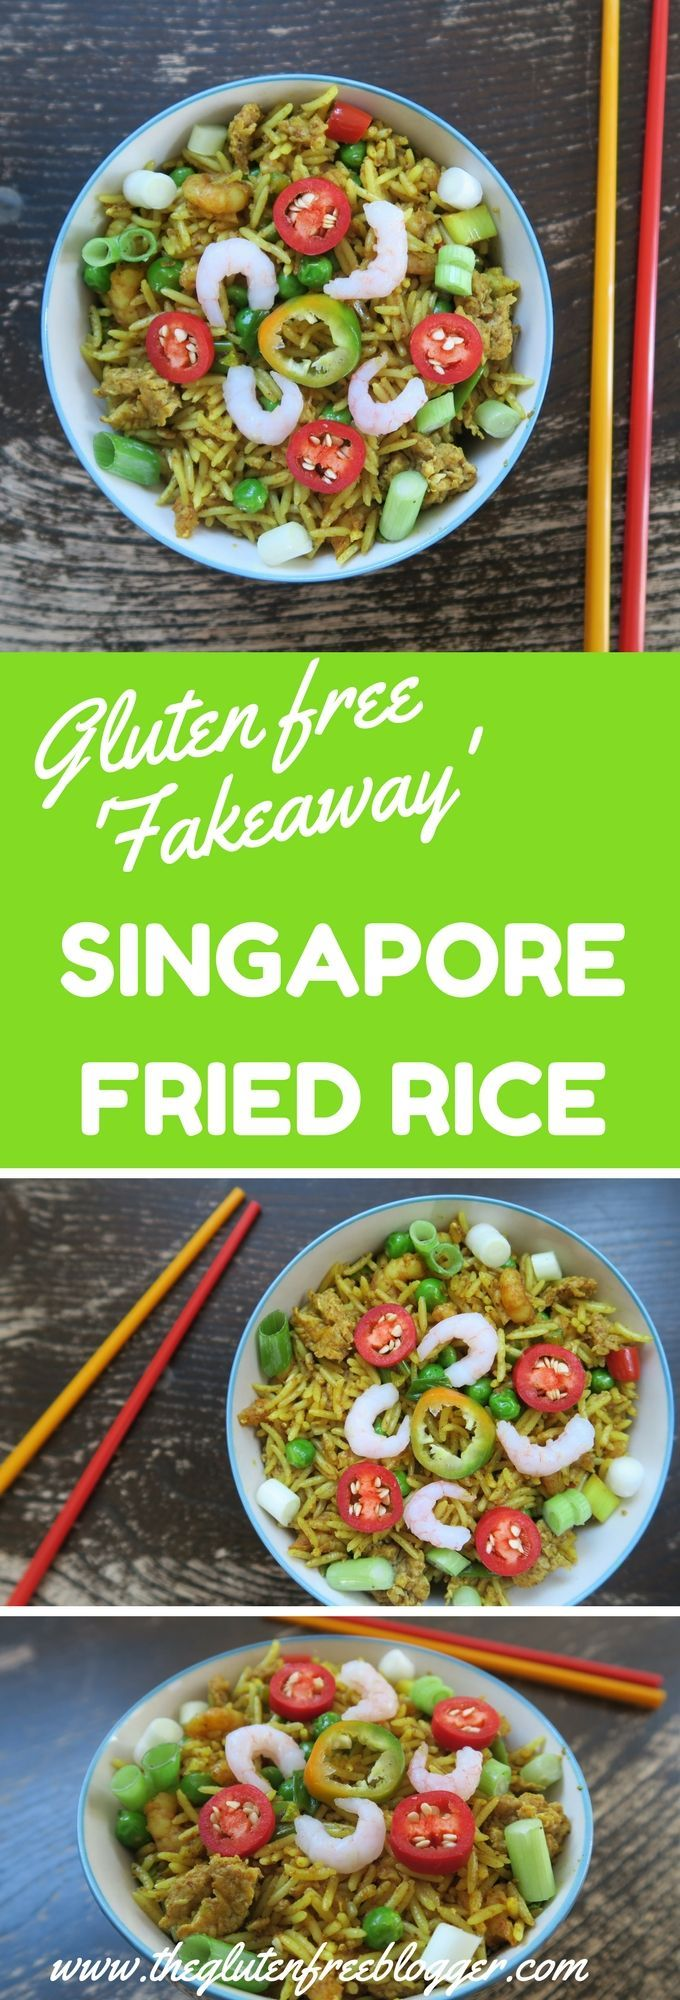 Gluten free chinese ideas singapore fried rice from the gluten craving a gluten free chinese take away fake it with this quick and easy gluten free recipe for singapore fried rice forumfinder Choice Image